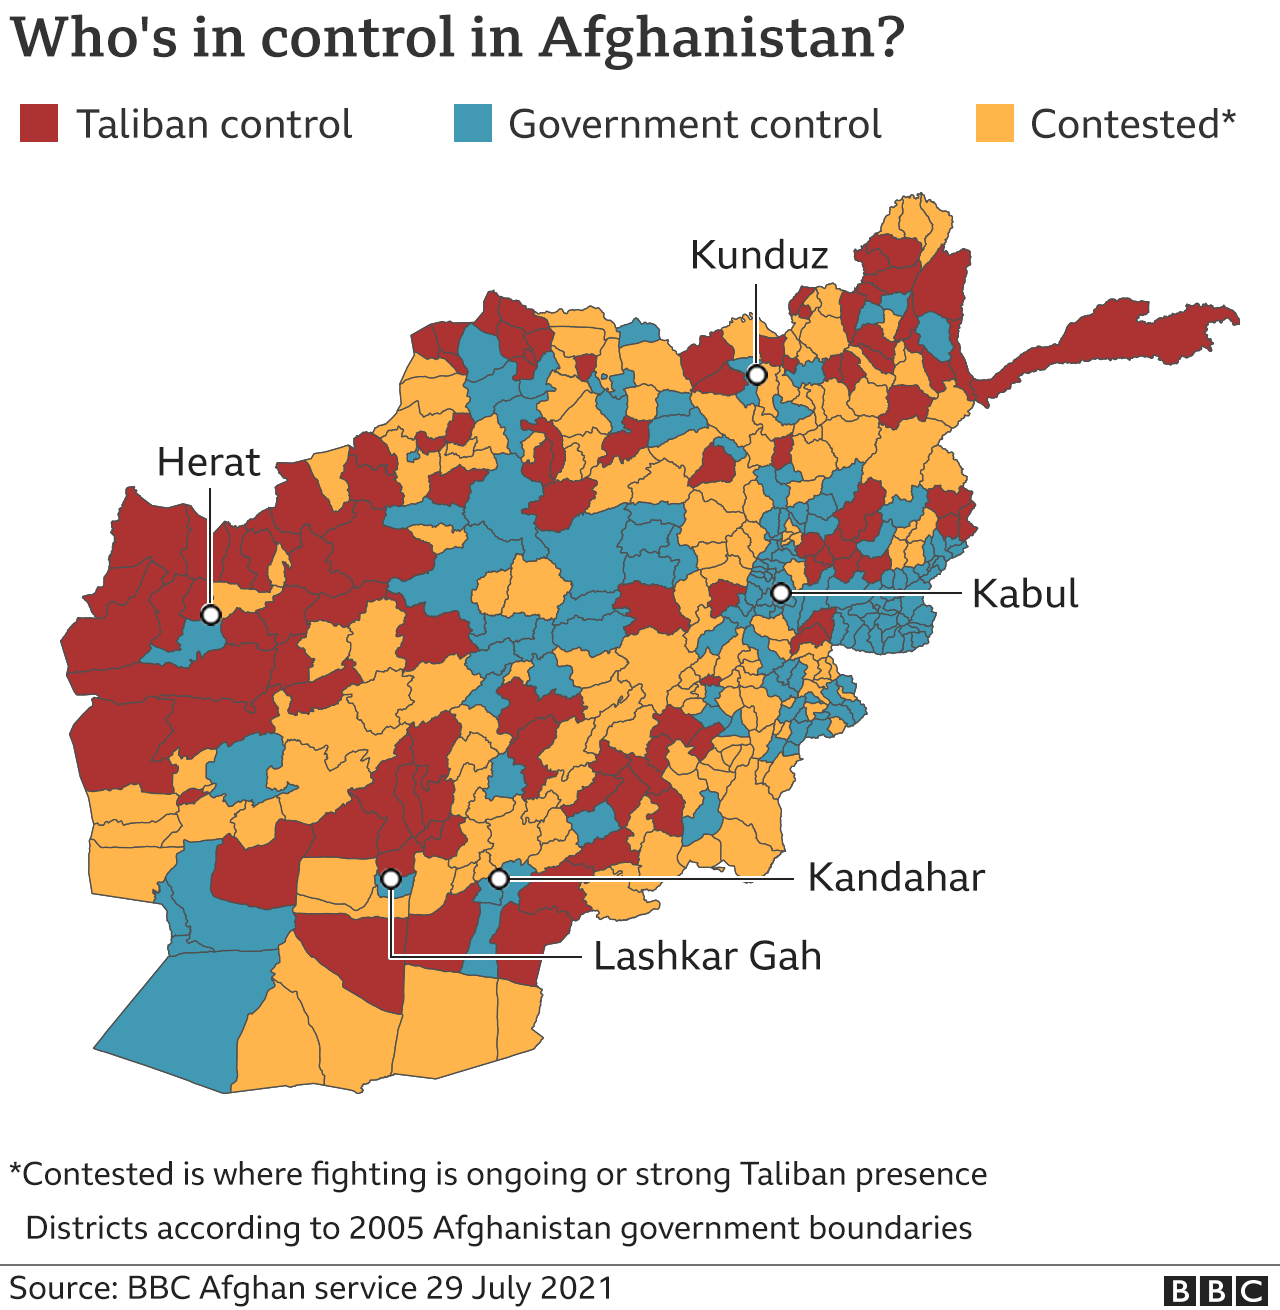 https://c.files.bbci.co.uk/48F2/production/_119647681_afghanistan_control_map_29jul_x2_640-nc.png